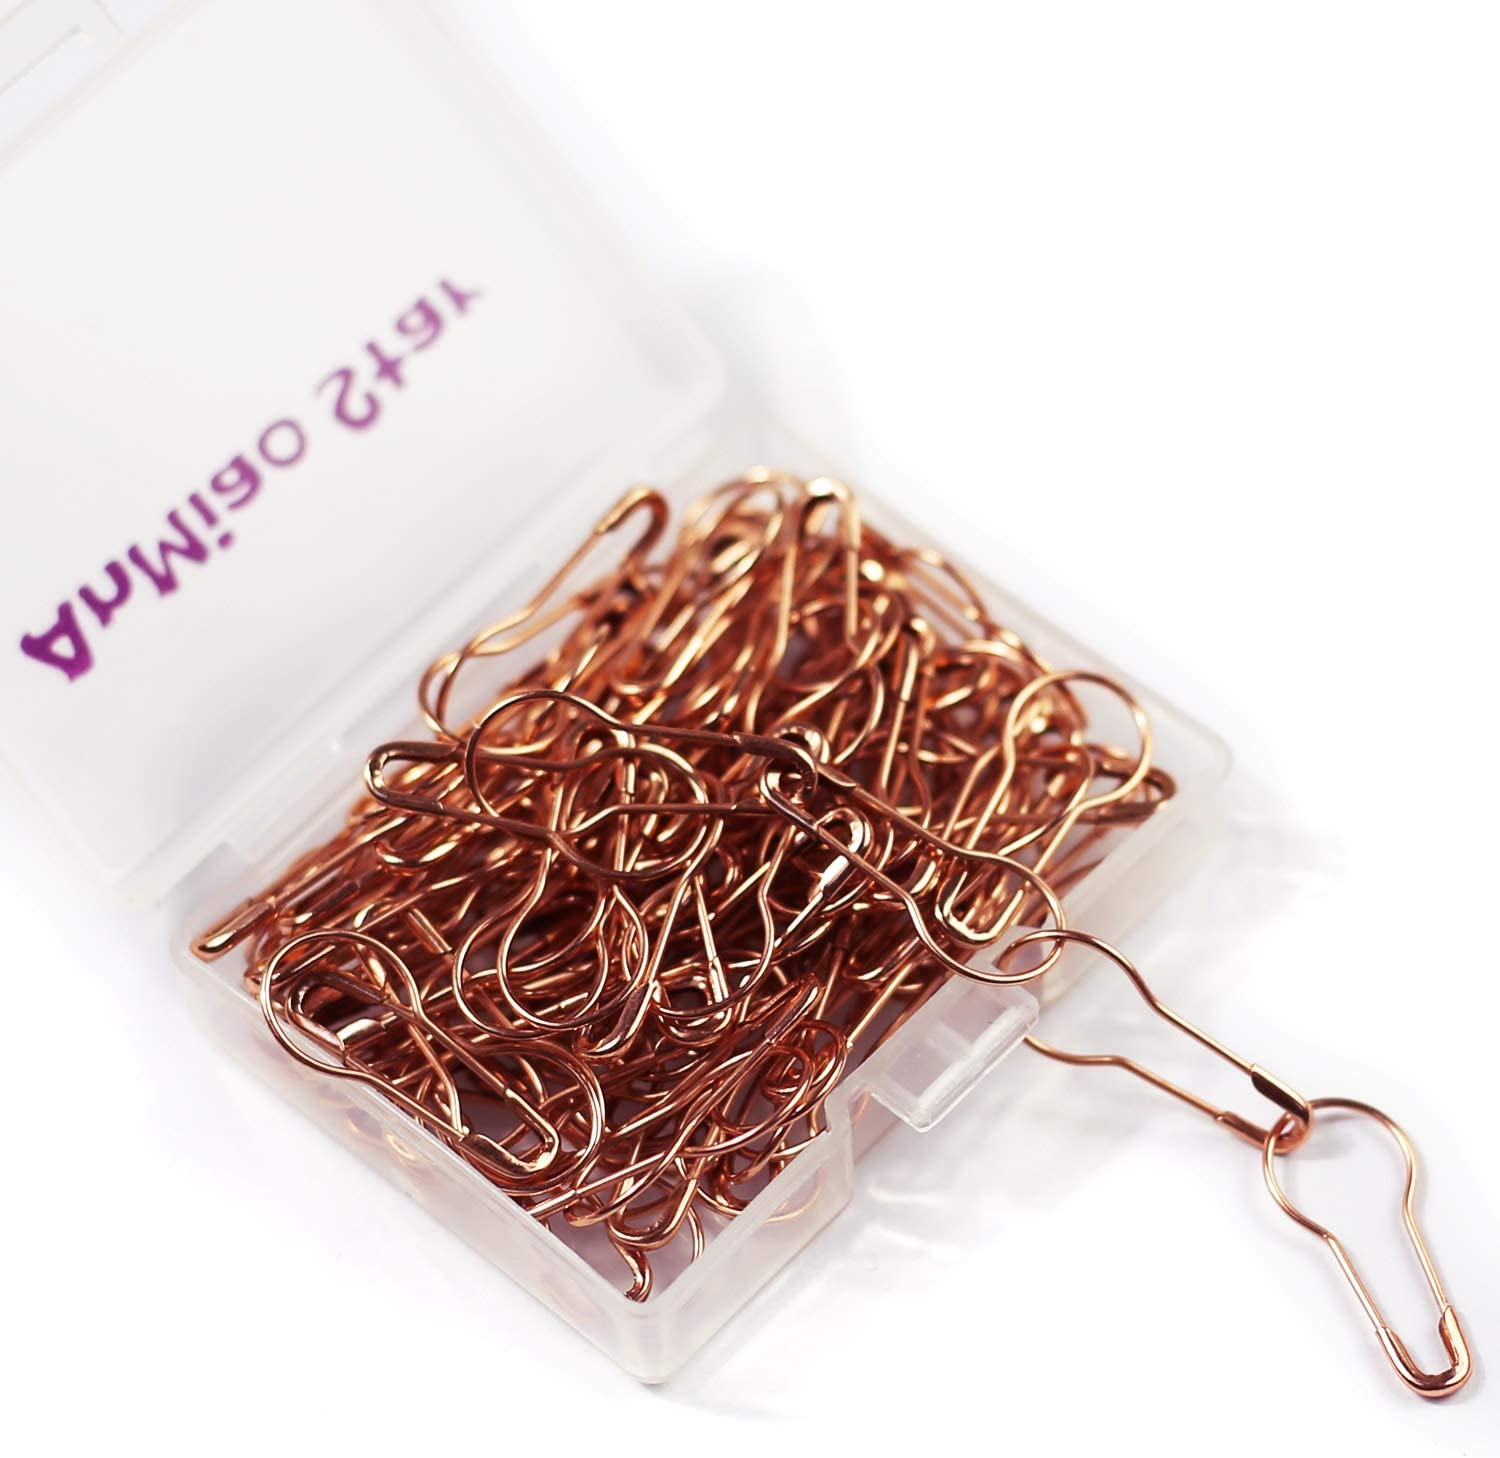 Shiguang 100 Pieces Colorful Metal Knitting Pins Assorted Pear Shape Safety Pins for Sewing Clothing DIY Craft Making Premium 0.87 Inch Bulb Stitch Markers